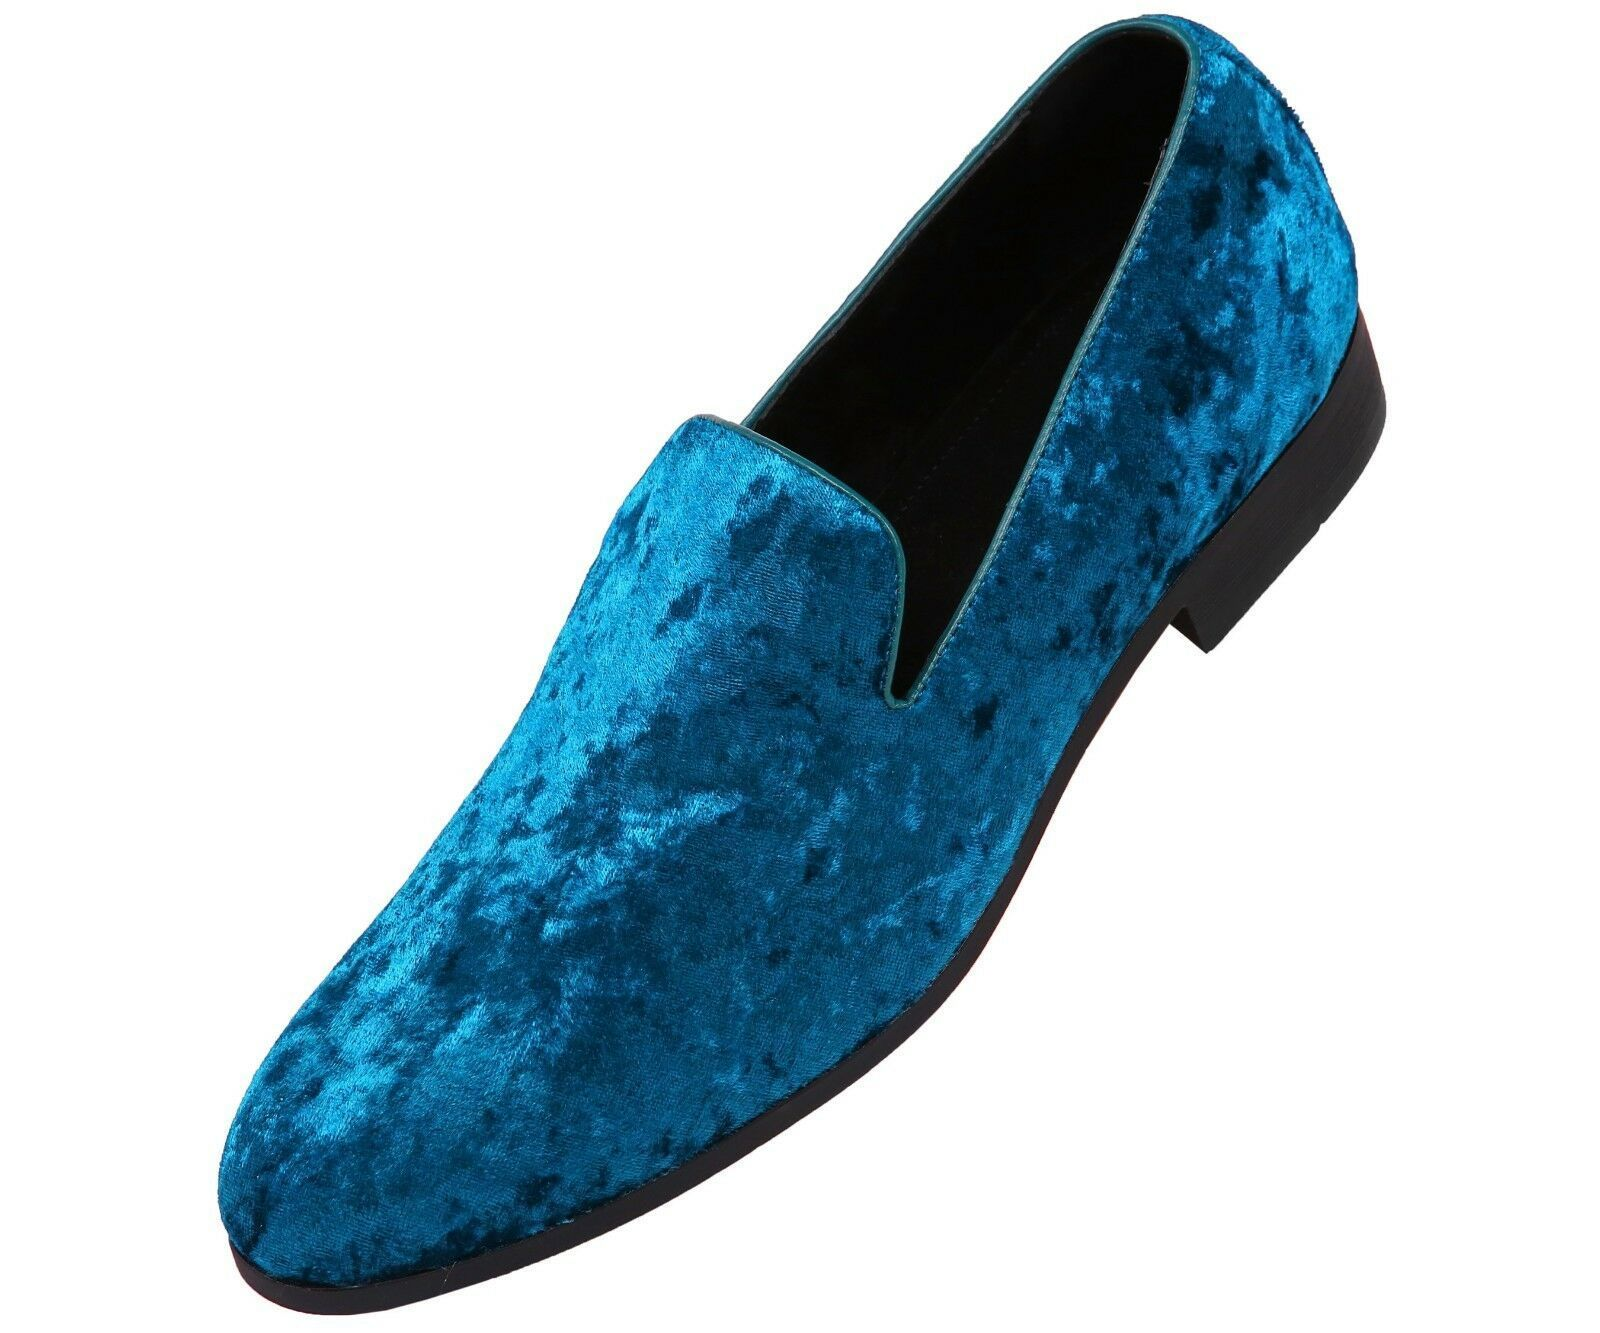 Handmade Blue Rounded Toe Party Wear Stylish Men Moccasin Loafer Slip Ons Shoes image 2